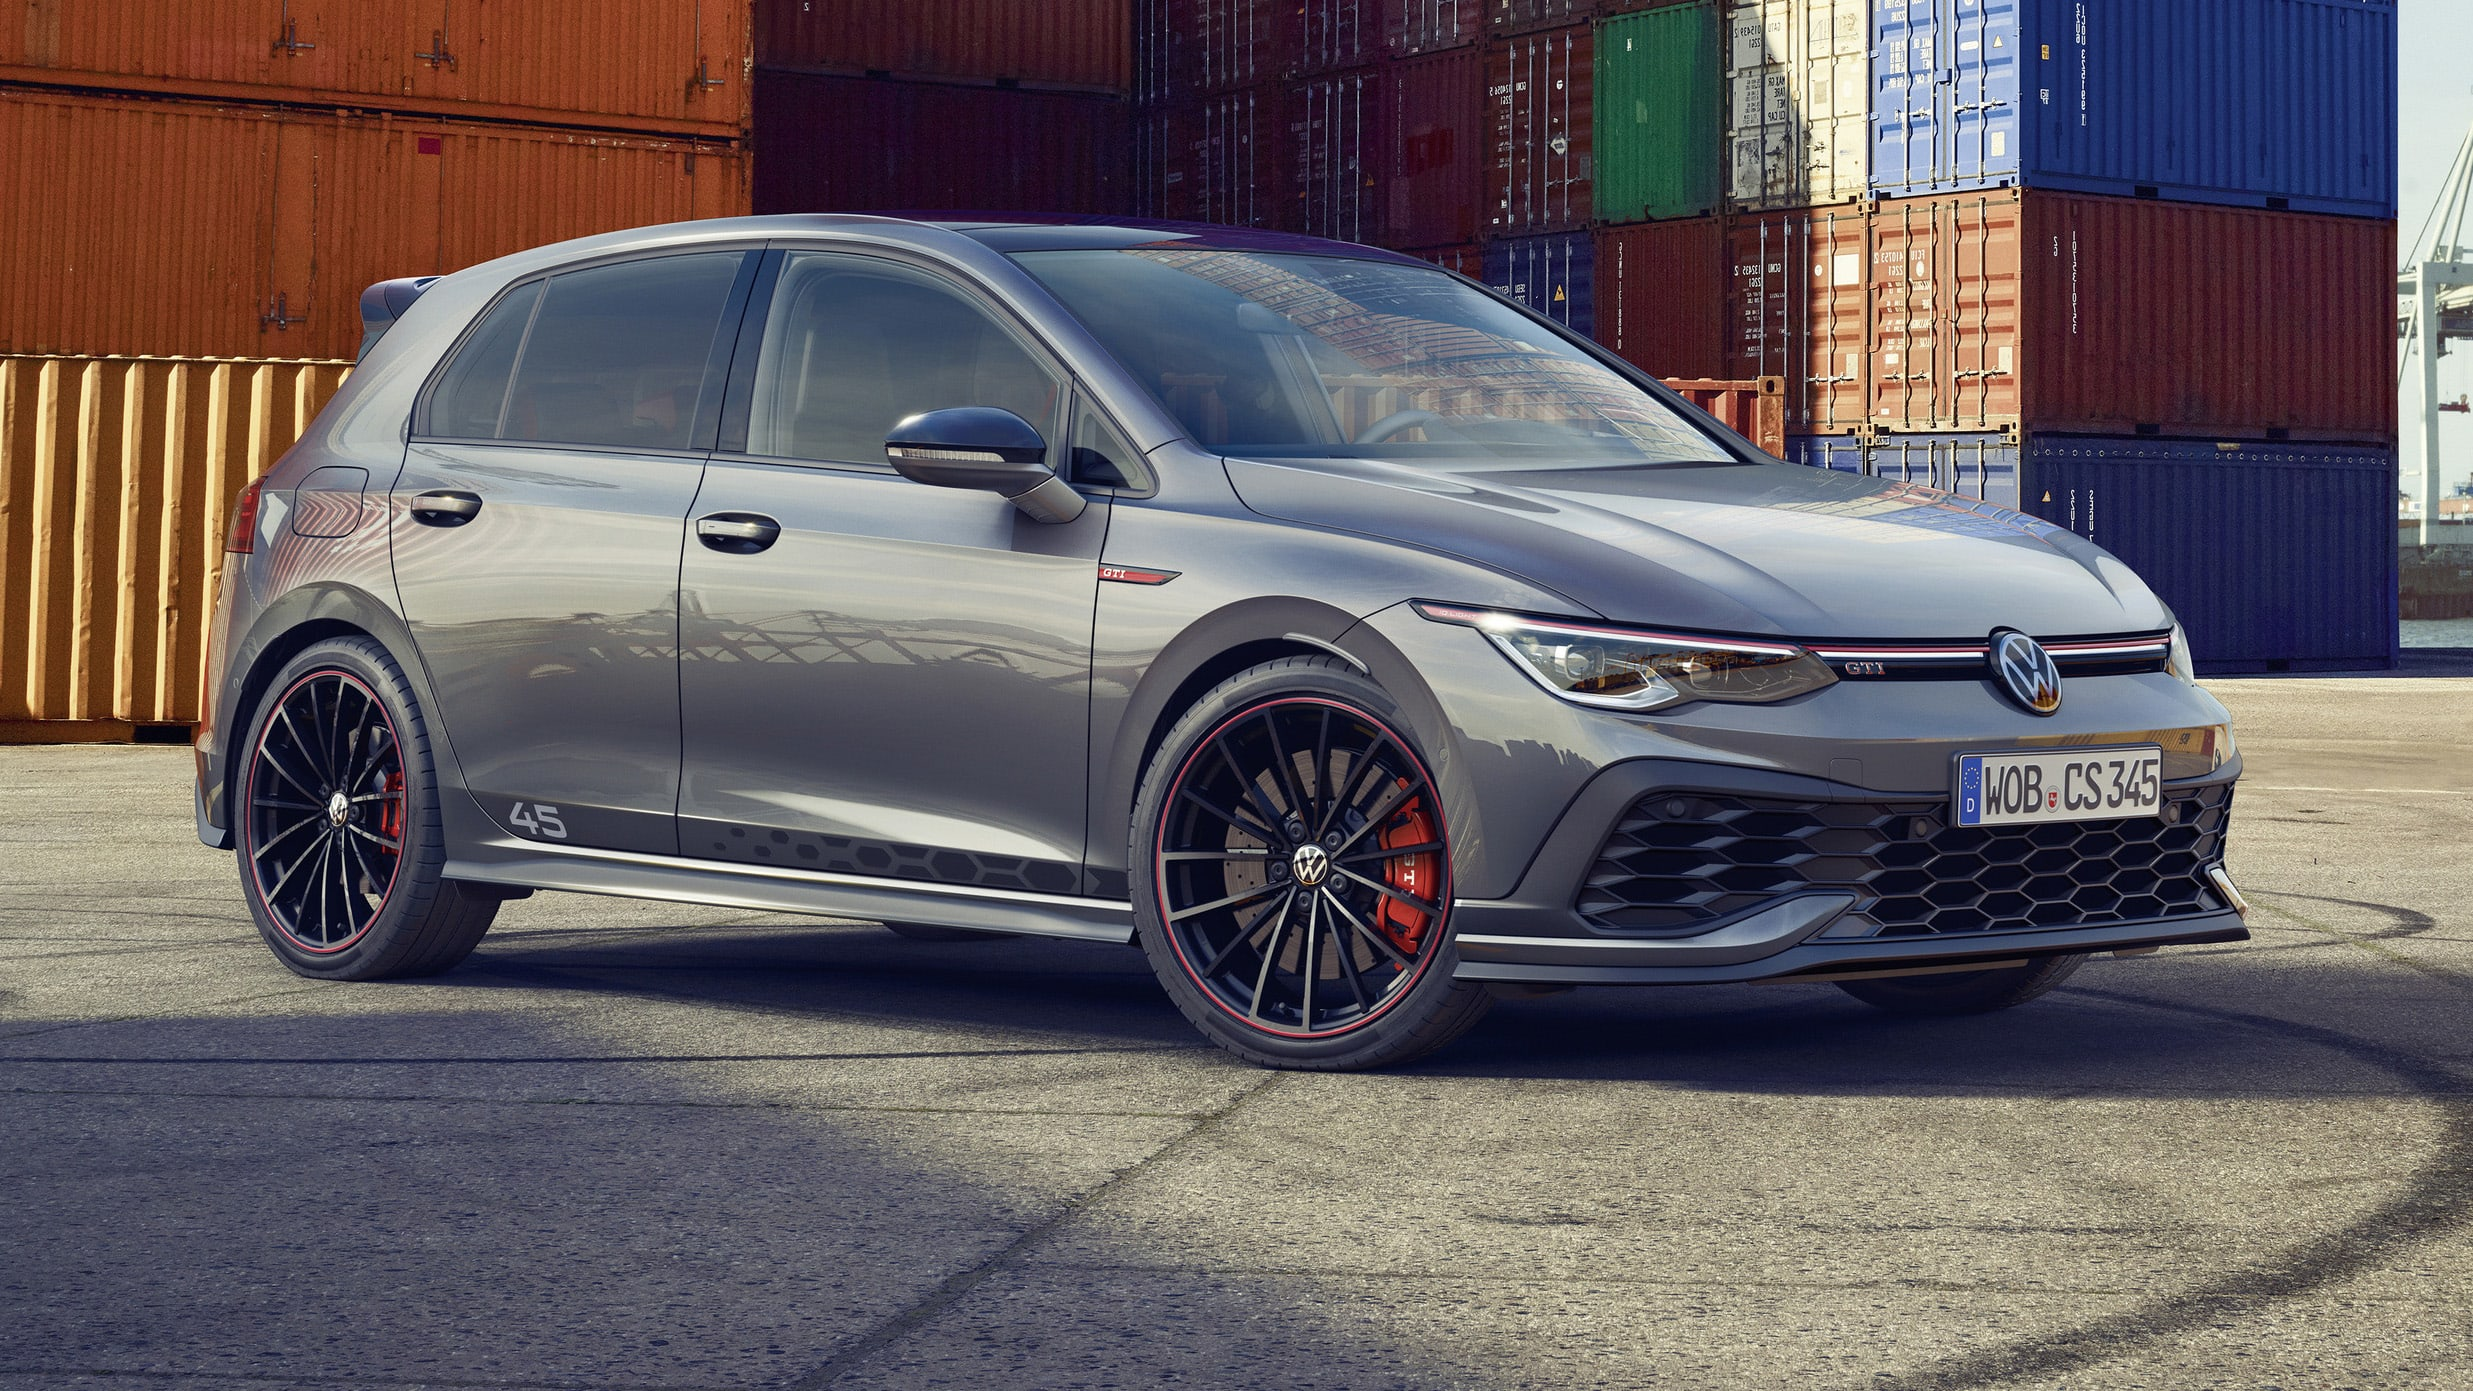 2021 Volkswagen Golf Gti Clubsport 45 Unveiled Unlikely For Australia Update Caradvice